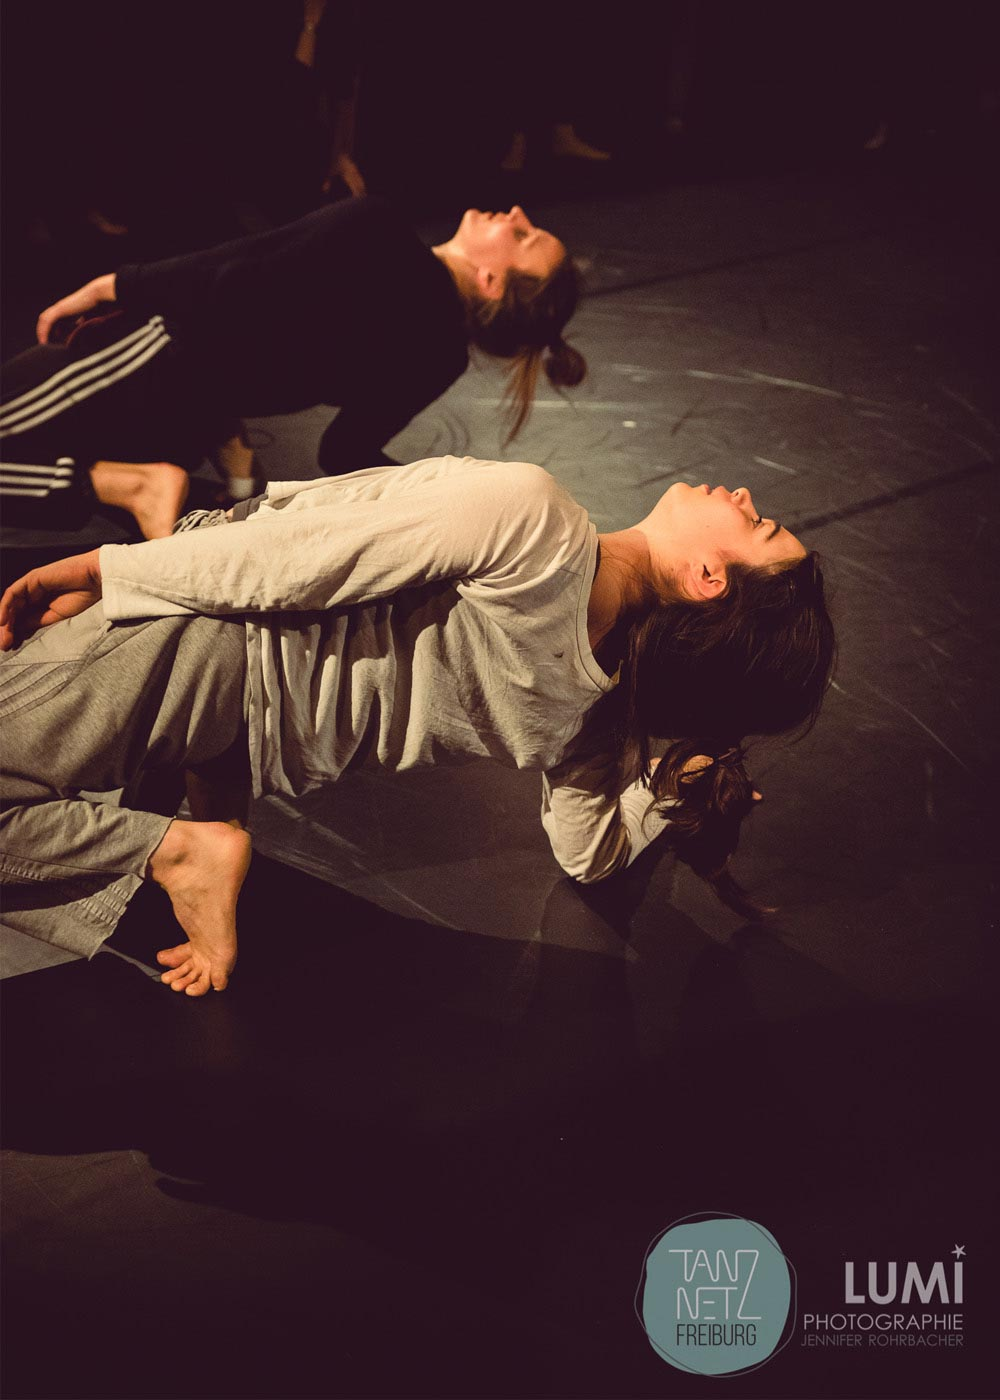 Anna Kempin and other dancer are balancing on their feet with head raised high, touching floor with one hand